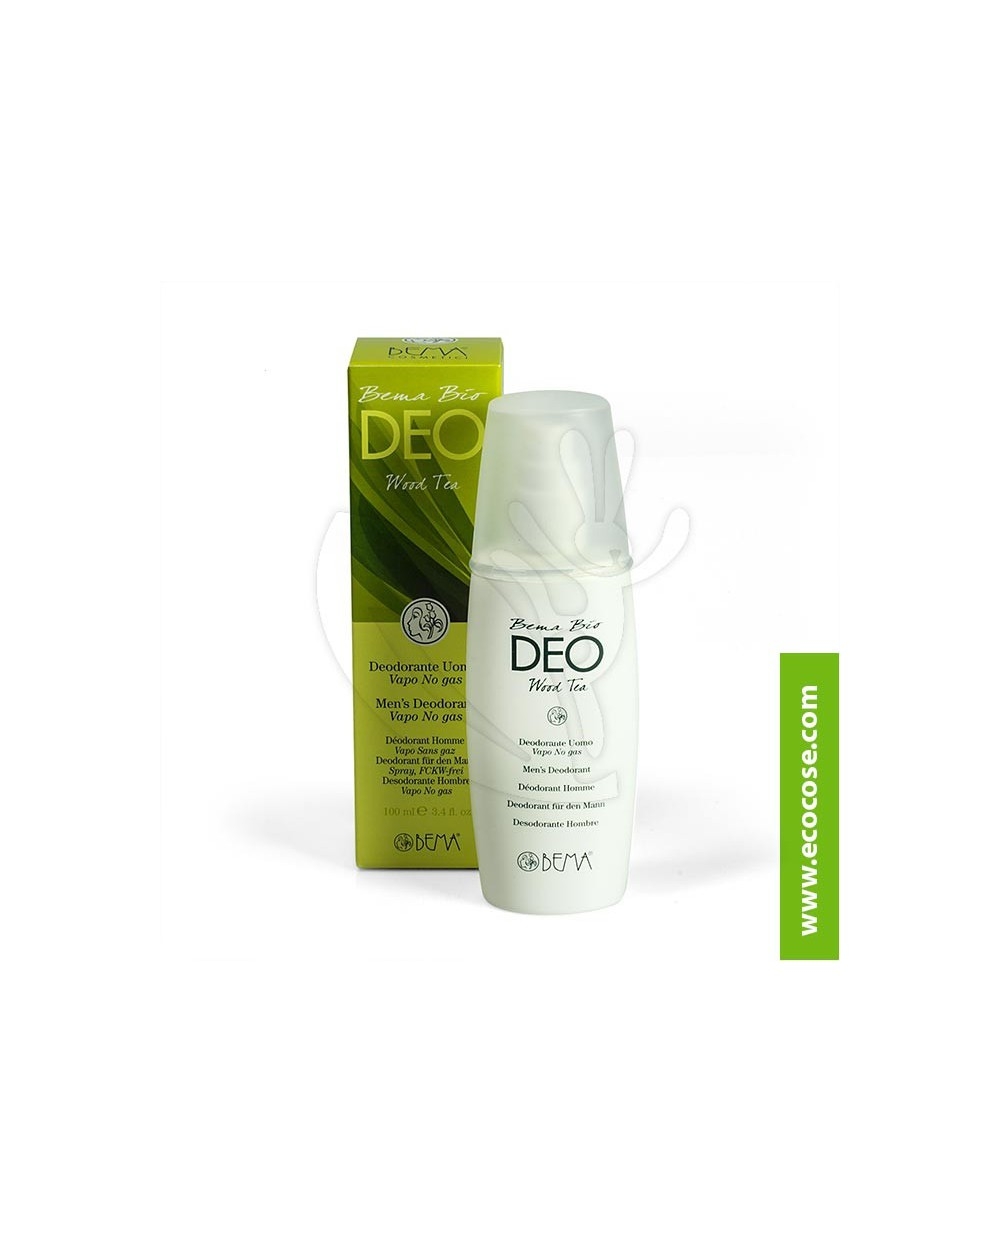 Bema Cosmetici - Bema Bio Deo Spray Uomo - Wood Tea